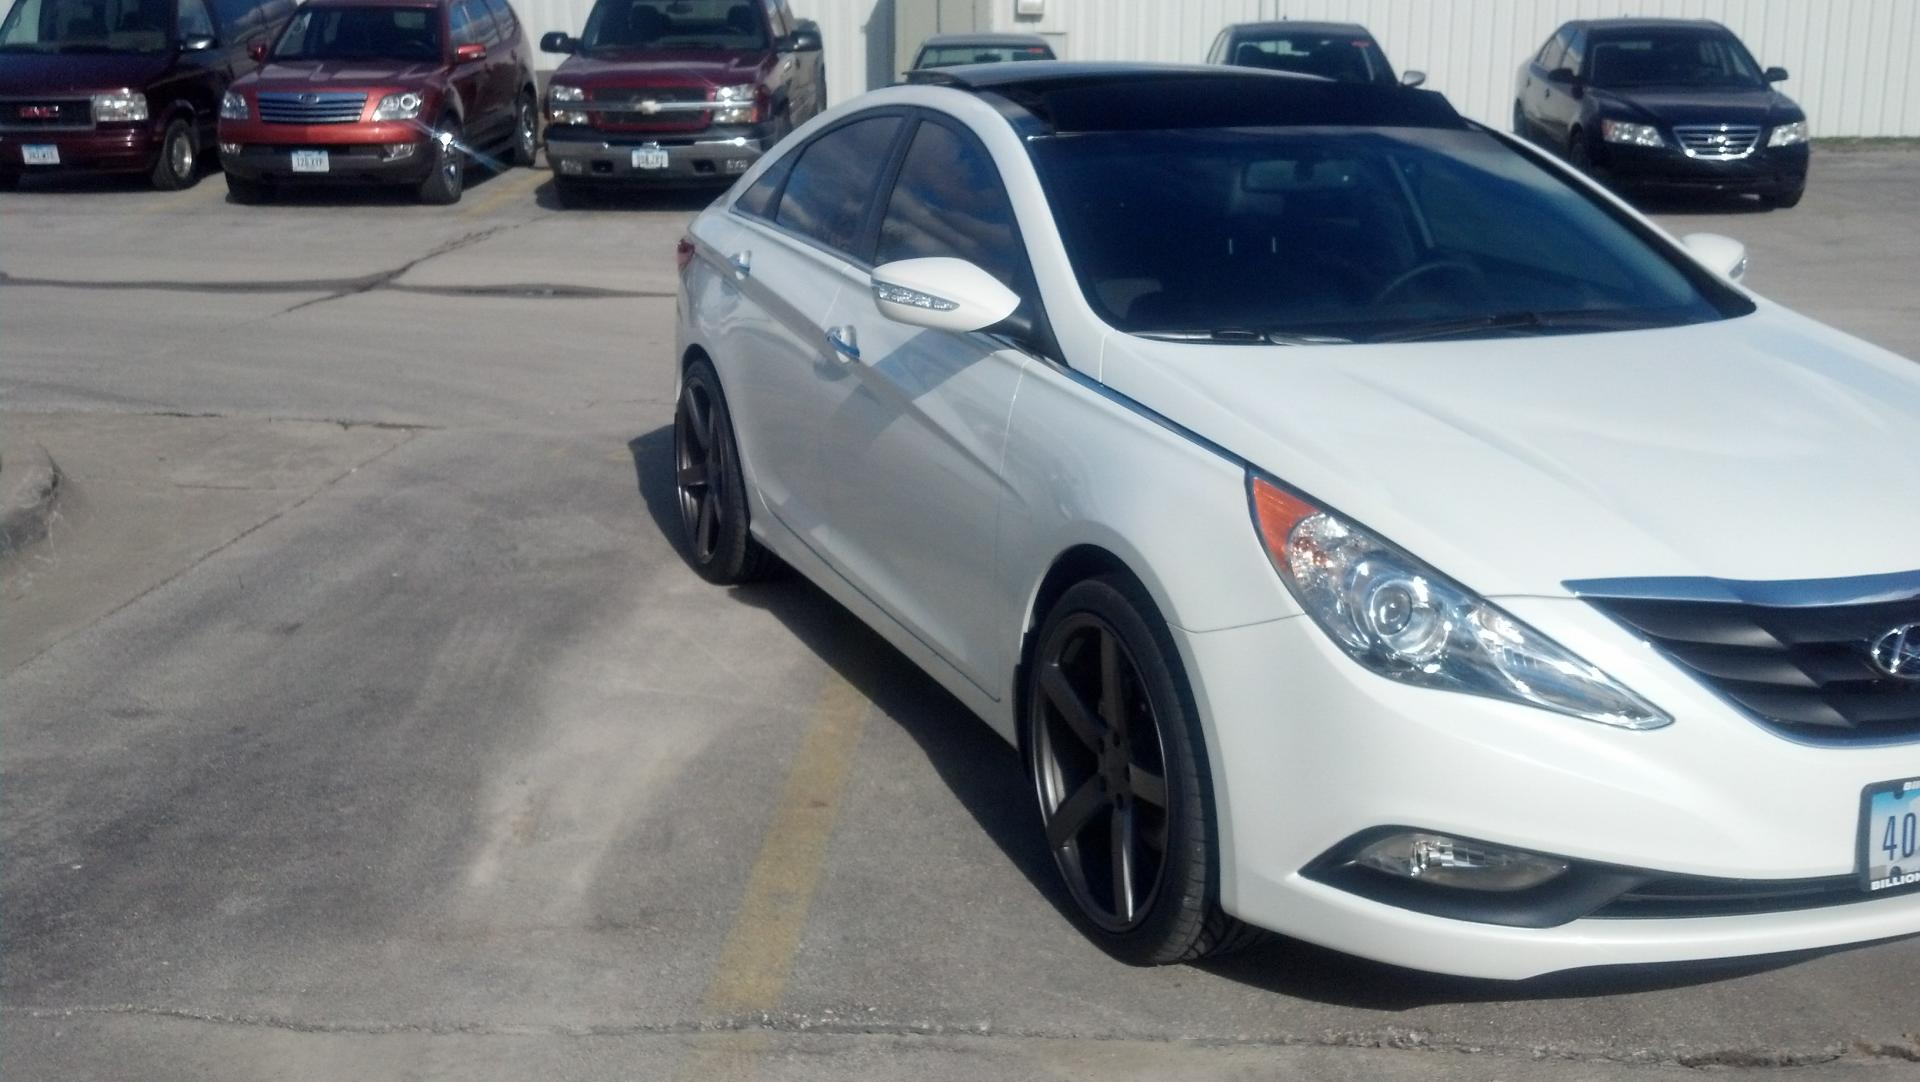 Ark Performance Hyundai Genesis Sedan 2014 Sema Show 10 moreover 2013 Kia Optima Black further Watch as well Store likewise Quoteko   postslammedcarpicspagetristatetunershome. on rims for 2011 sonata